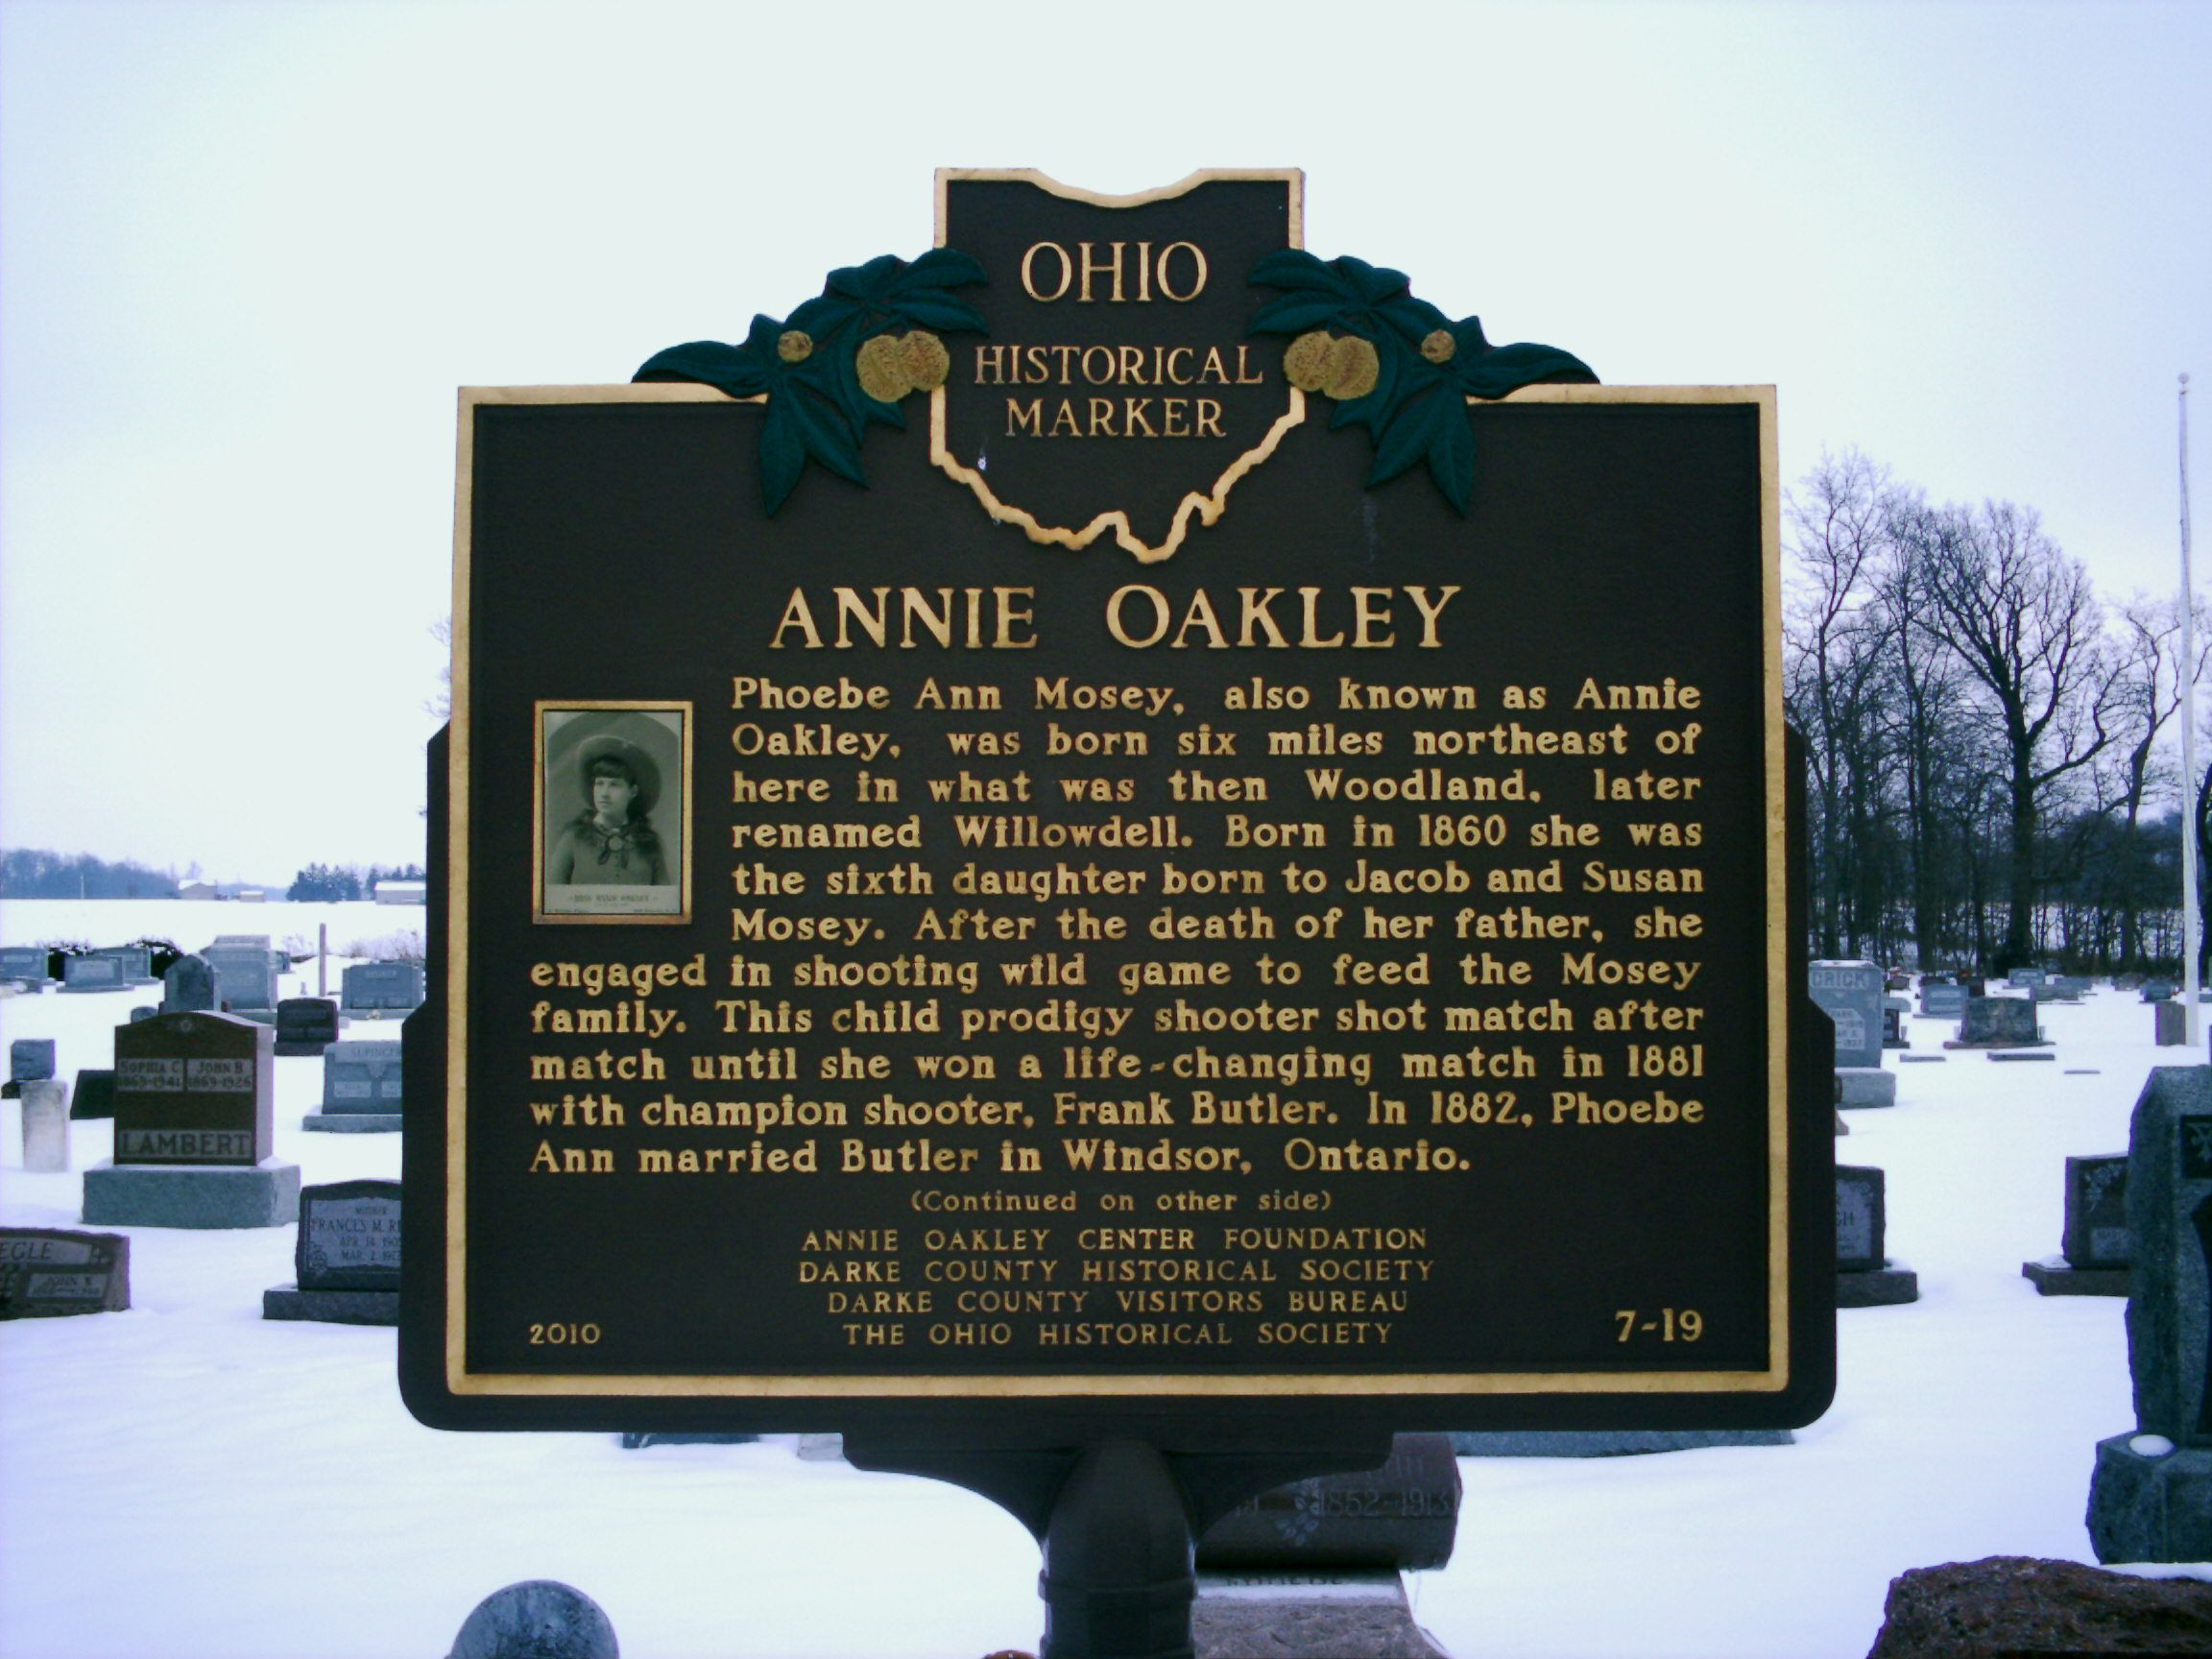 Brock, OH (Darke County) - Ohio Historical Marker # 7 - 19 at Annie Oakley's grave.